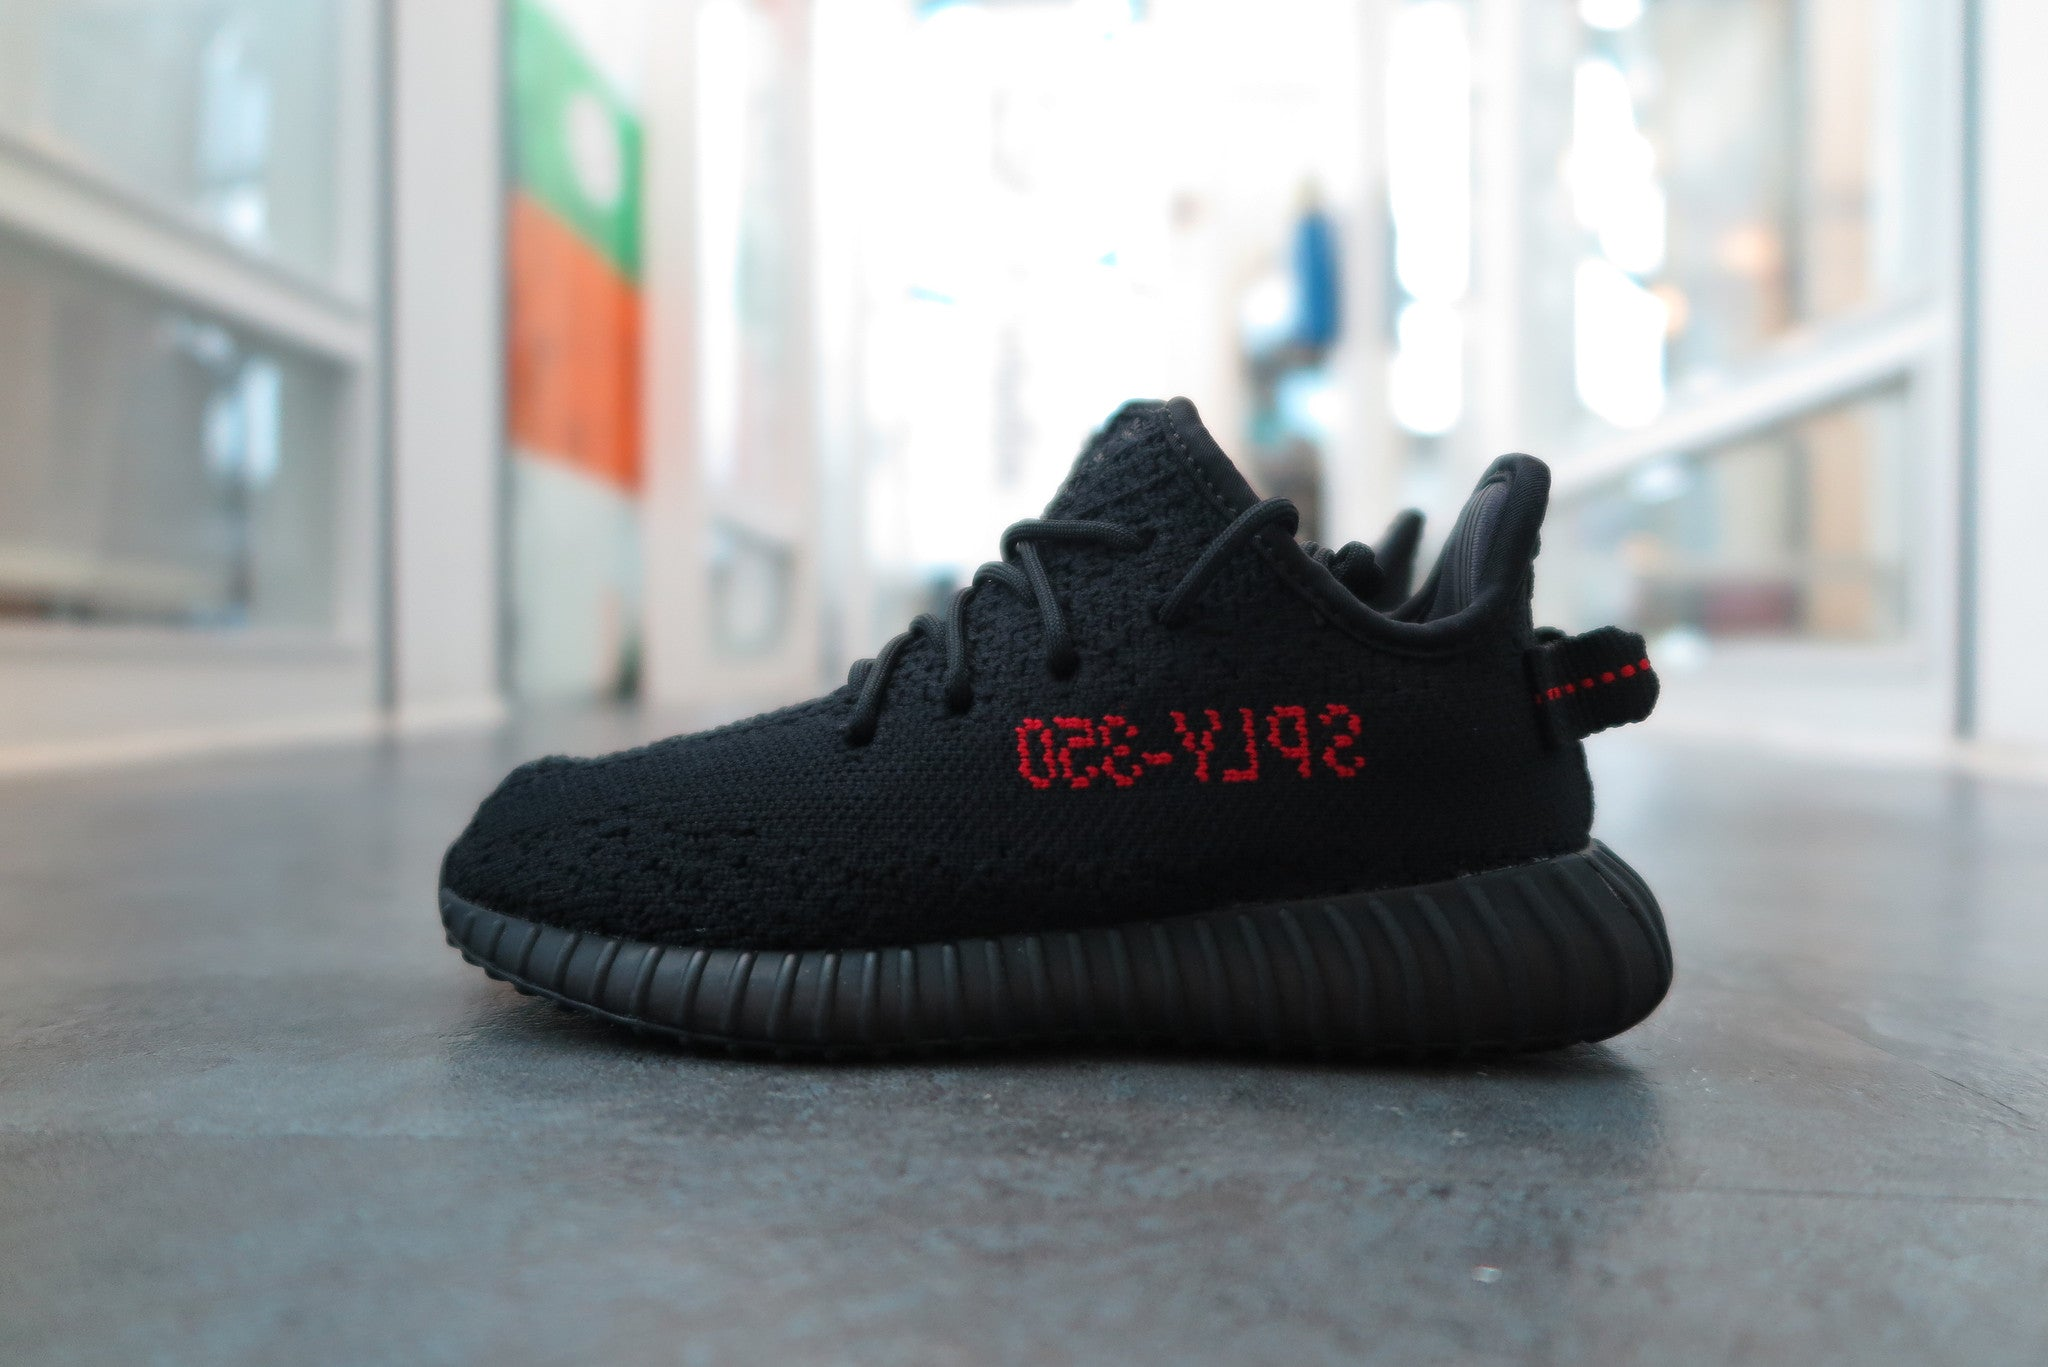 Adidas Yeezy 350 Boost V 2 Black Red Infant BB 6372 sizes 5 C 9 C